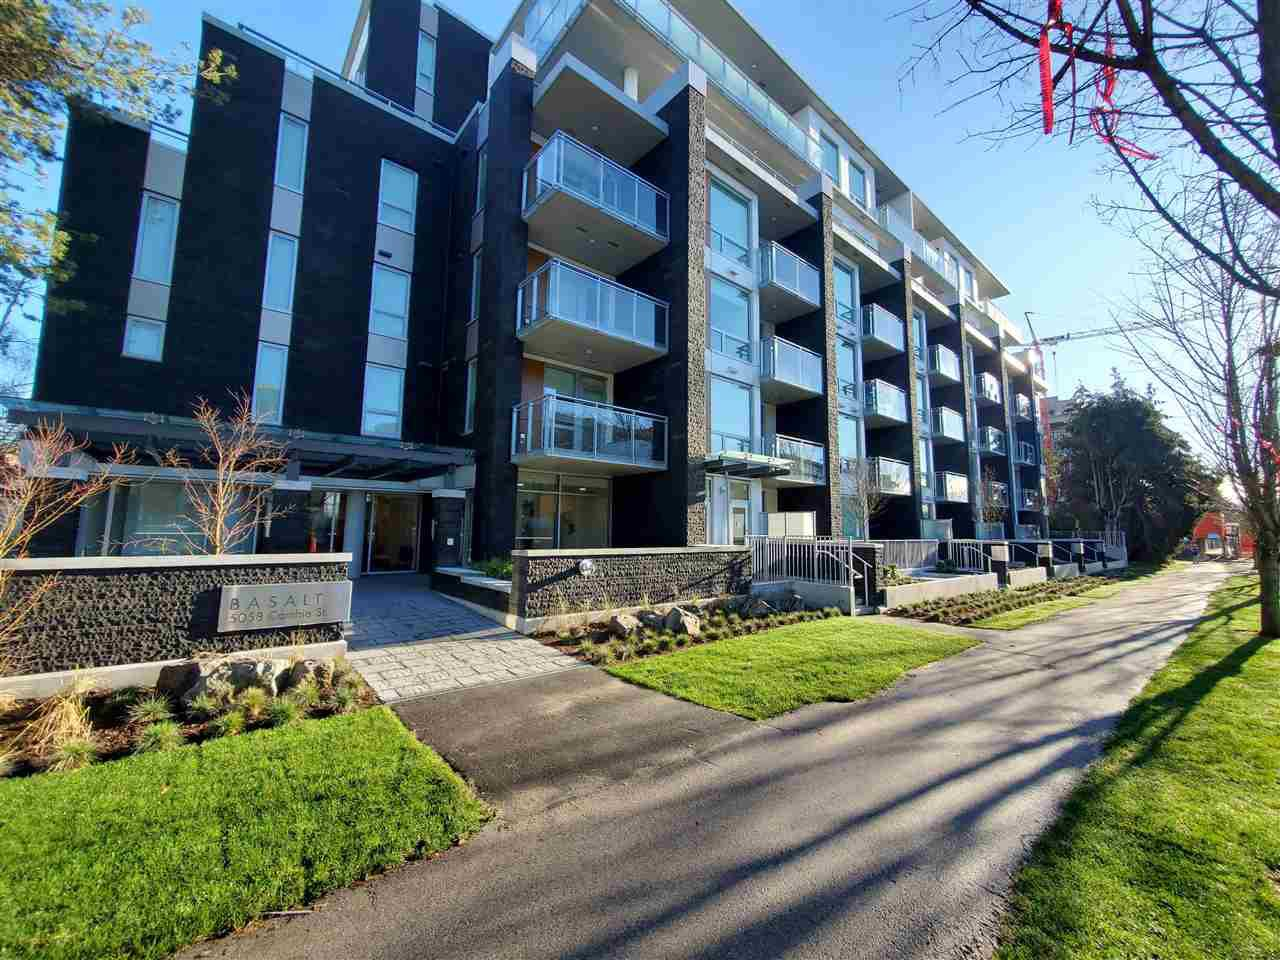 """Main Photo: 205 5058 CAMBIE Street in Vancouver: Cambie Condo for sale in """"BASALT"""" (Vancouver West)  : MLS®# R2527780"""